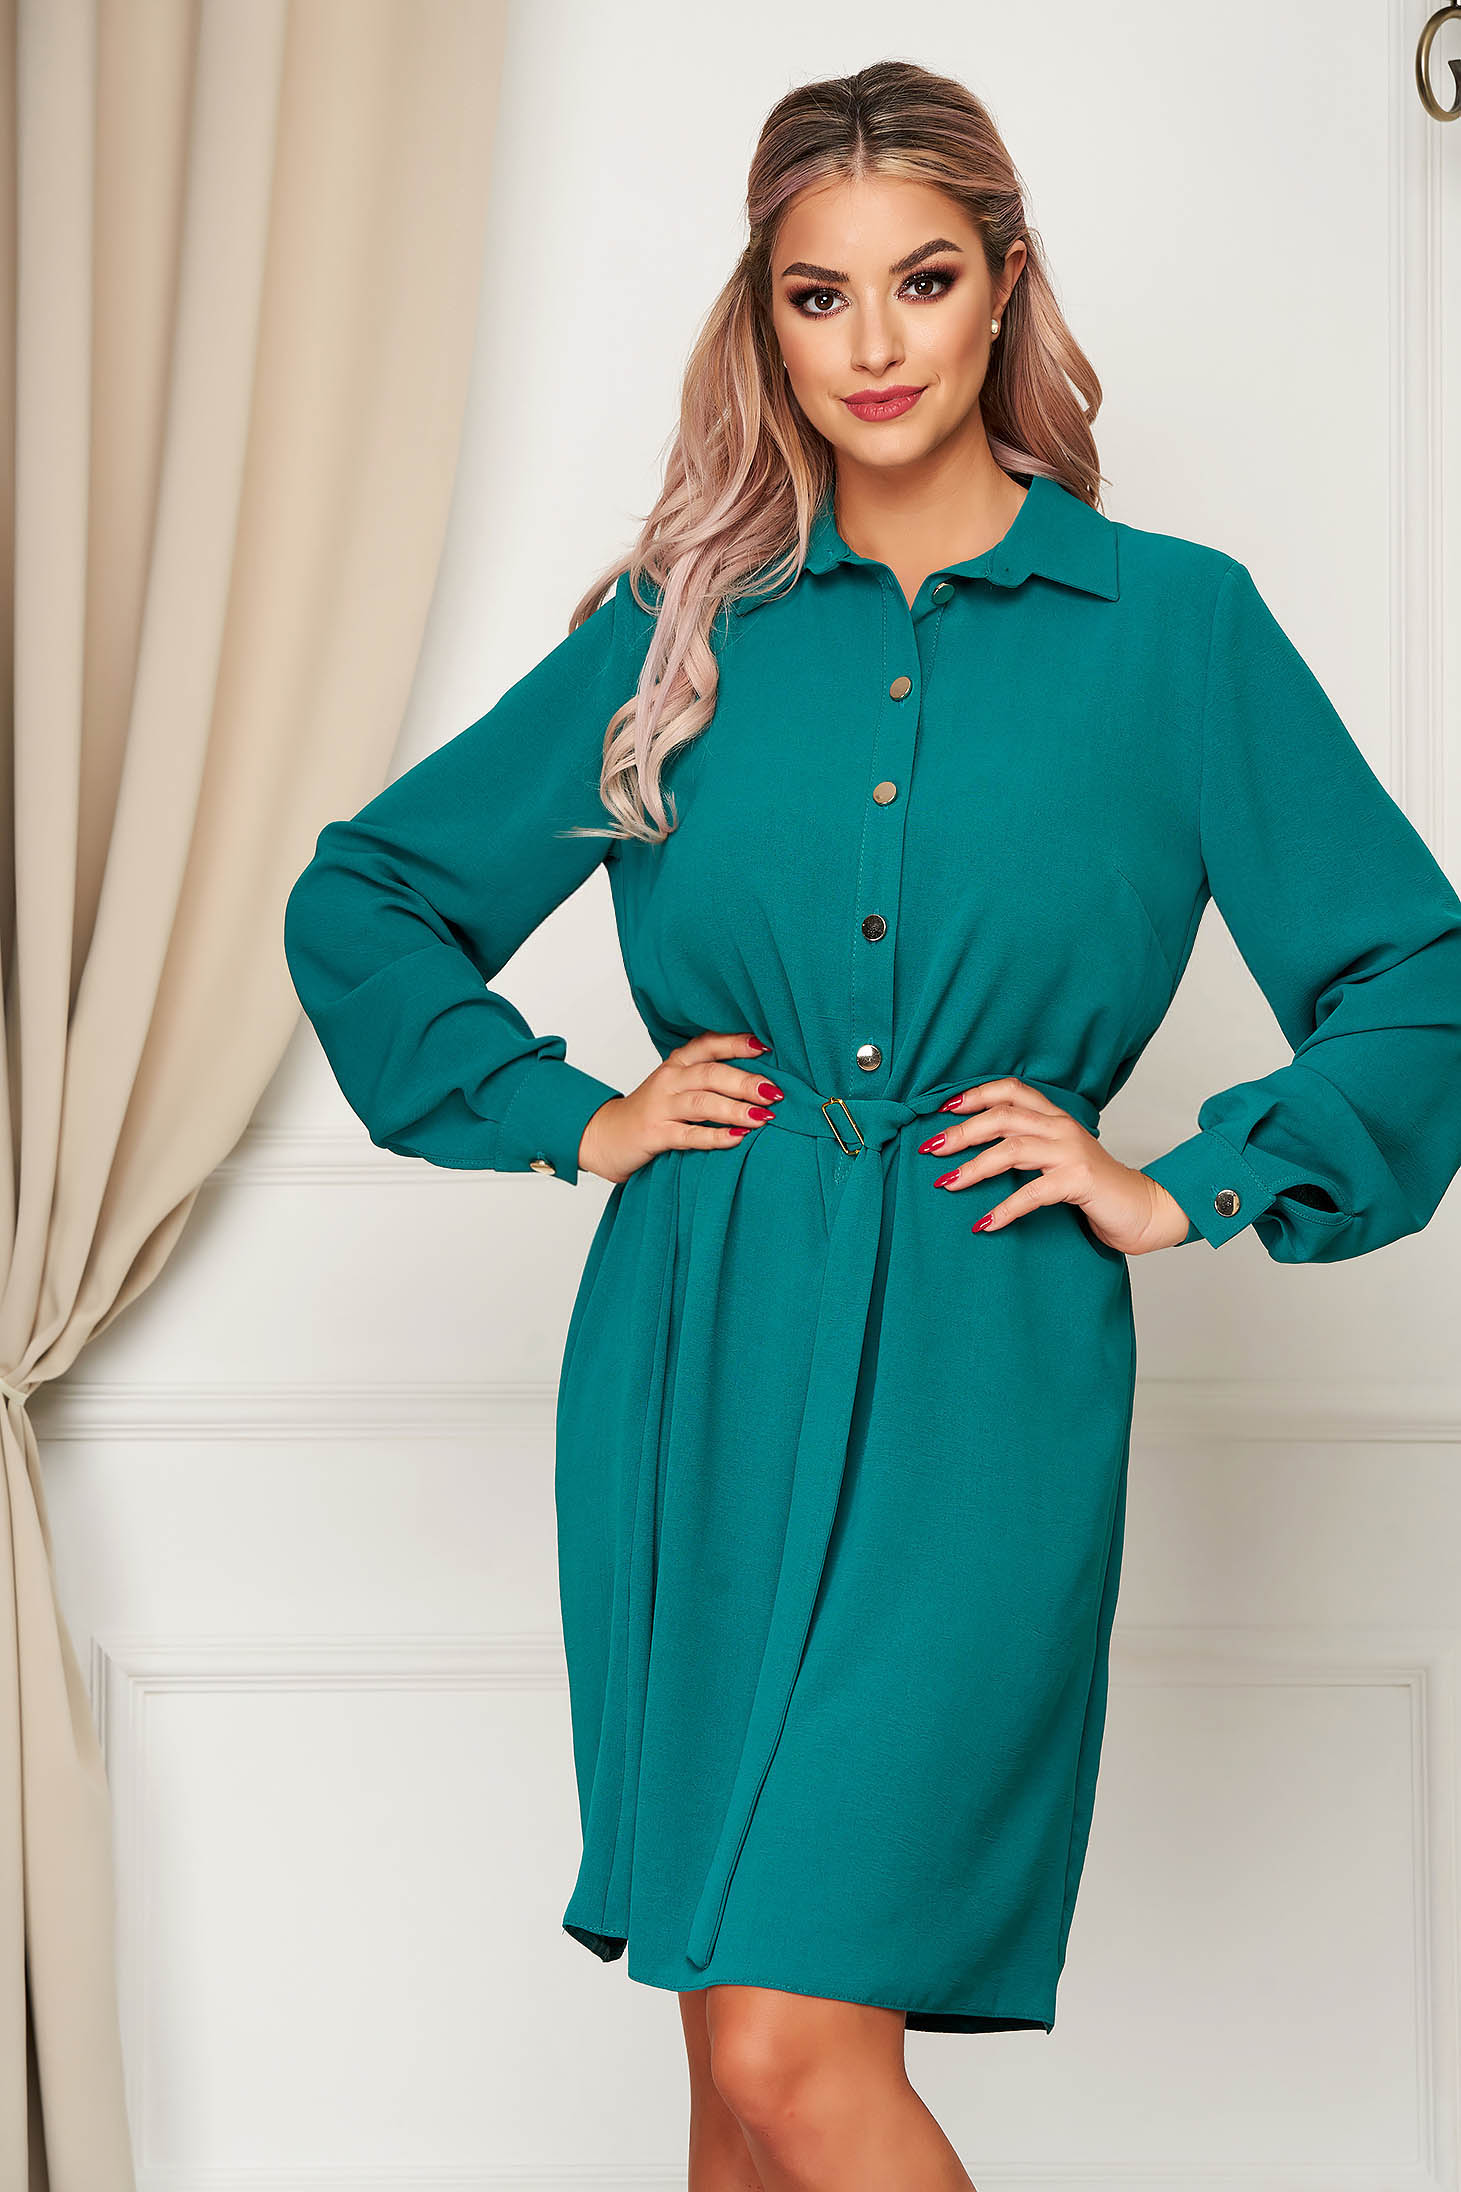 StarShinerS green dress daily flared accessorized with tied waistband with button accessories